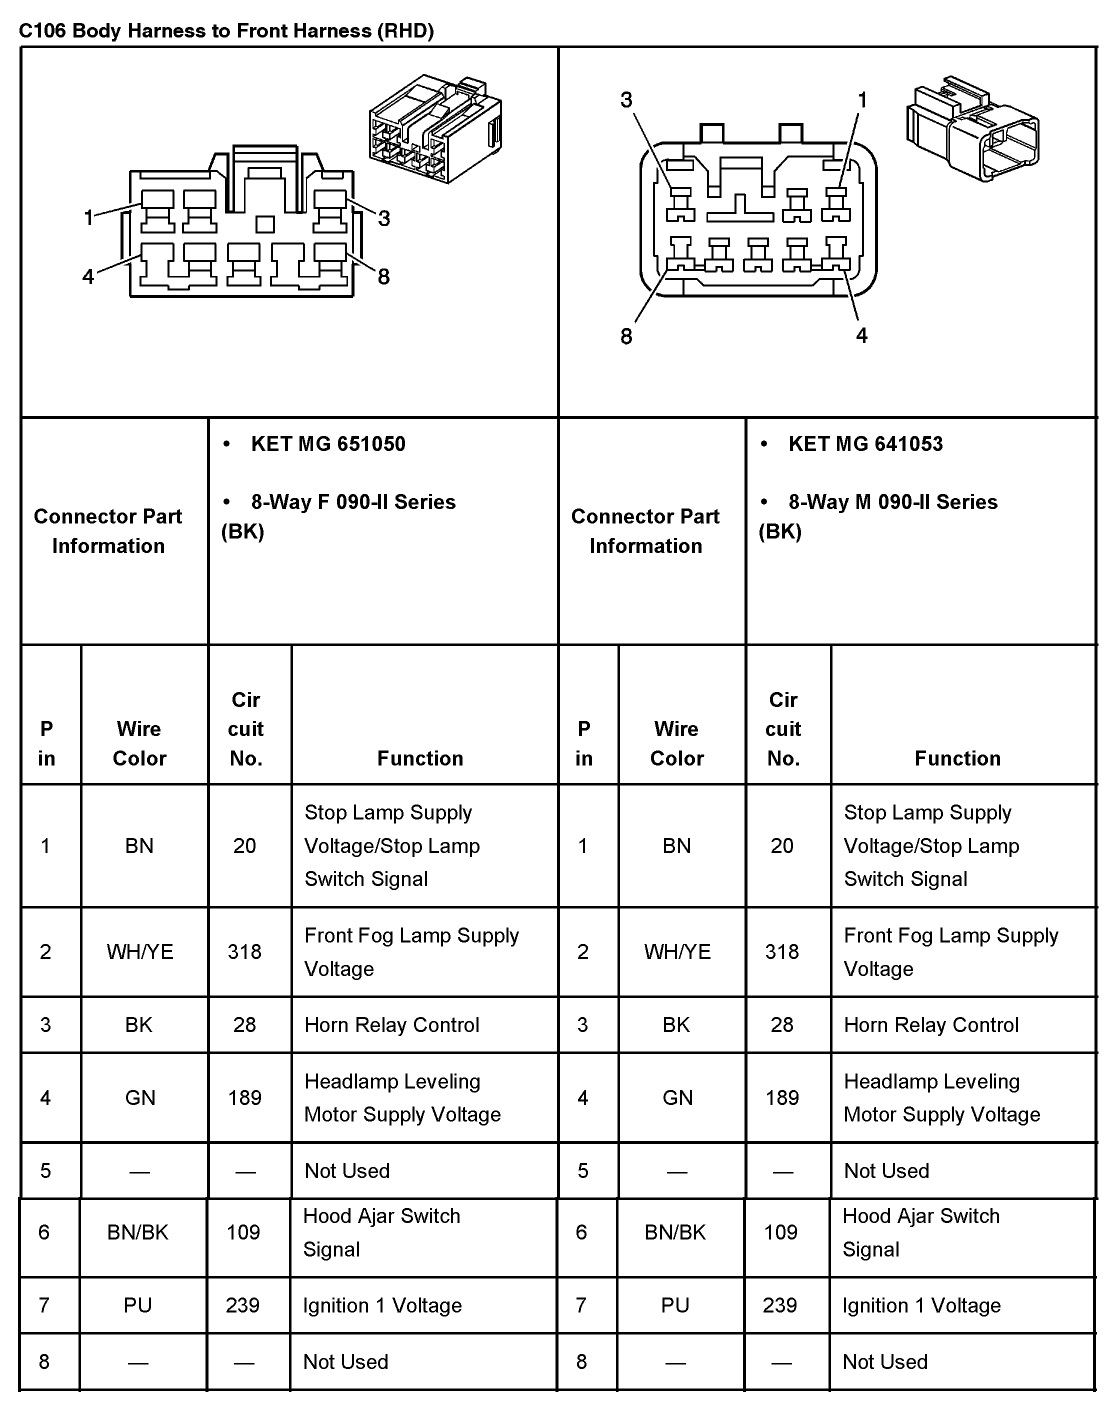 2009 Hyundai Sonata Radio Wiring Diagram Free Picture 2008 Cobalt Fuse Box Auto Electrical U2022 For 2005 Aveo Master Connector List And Diagrams